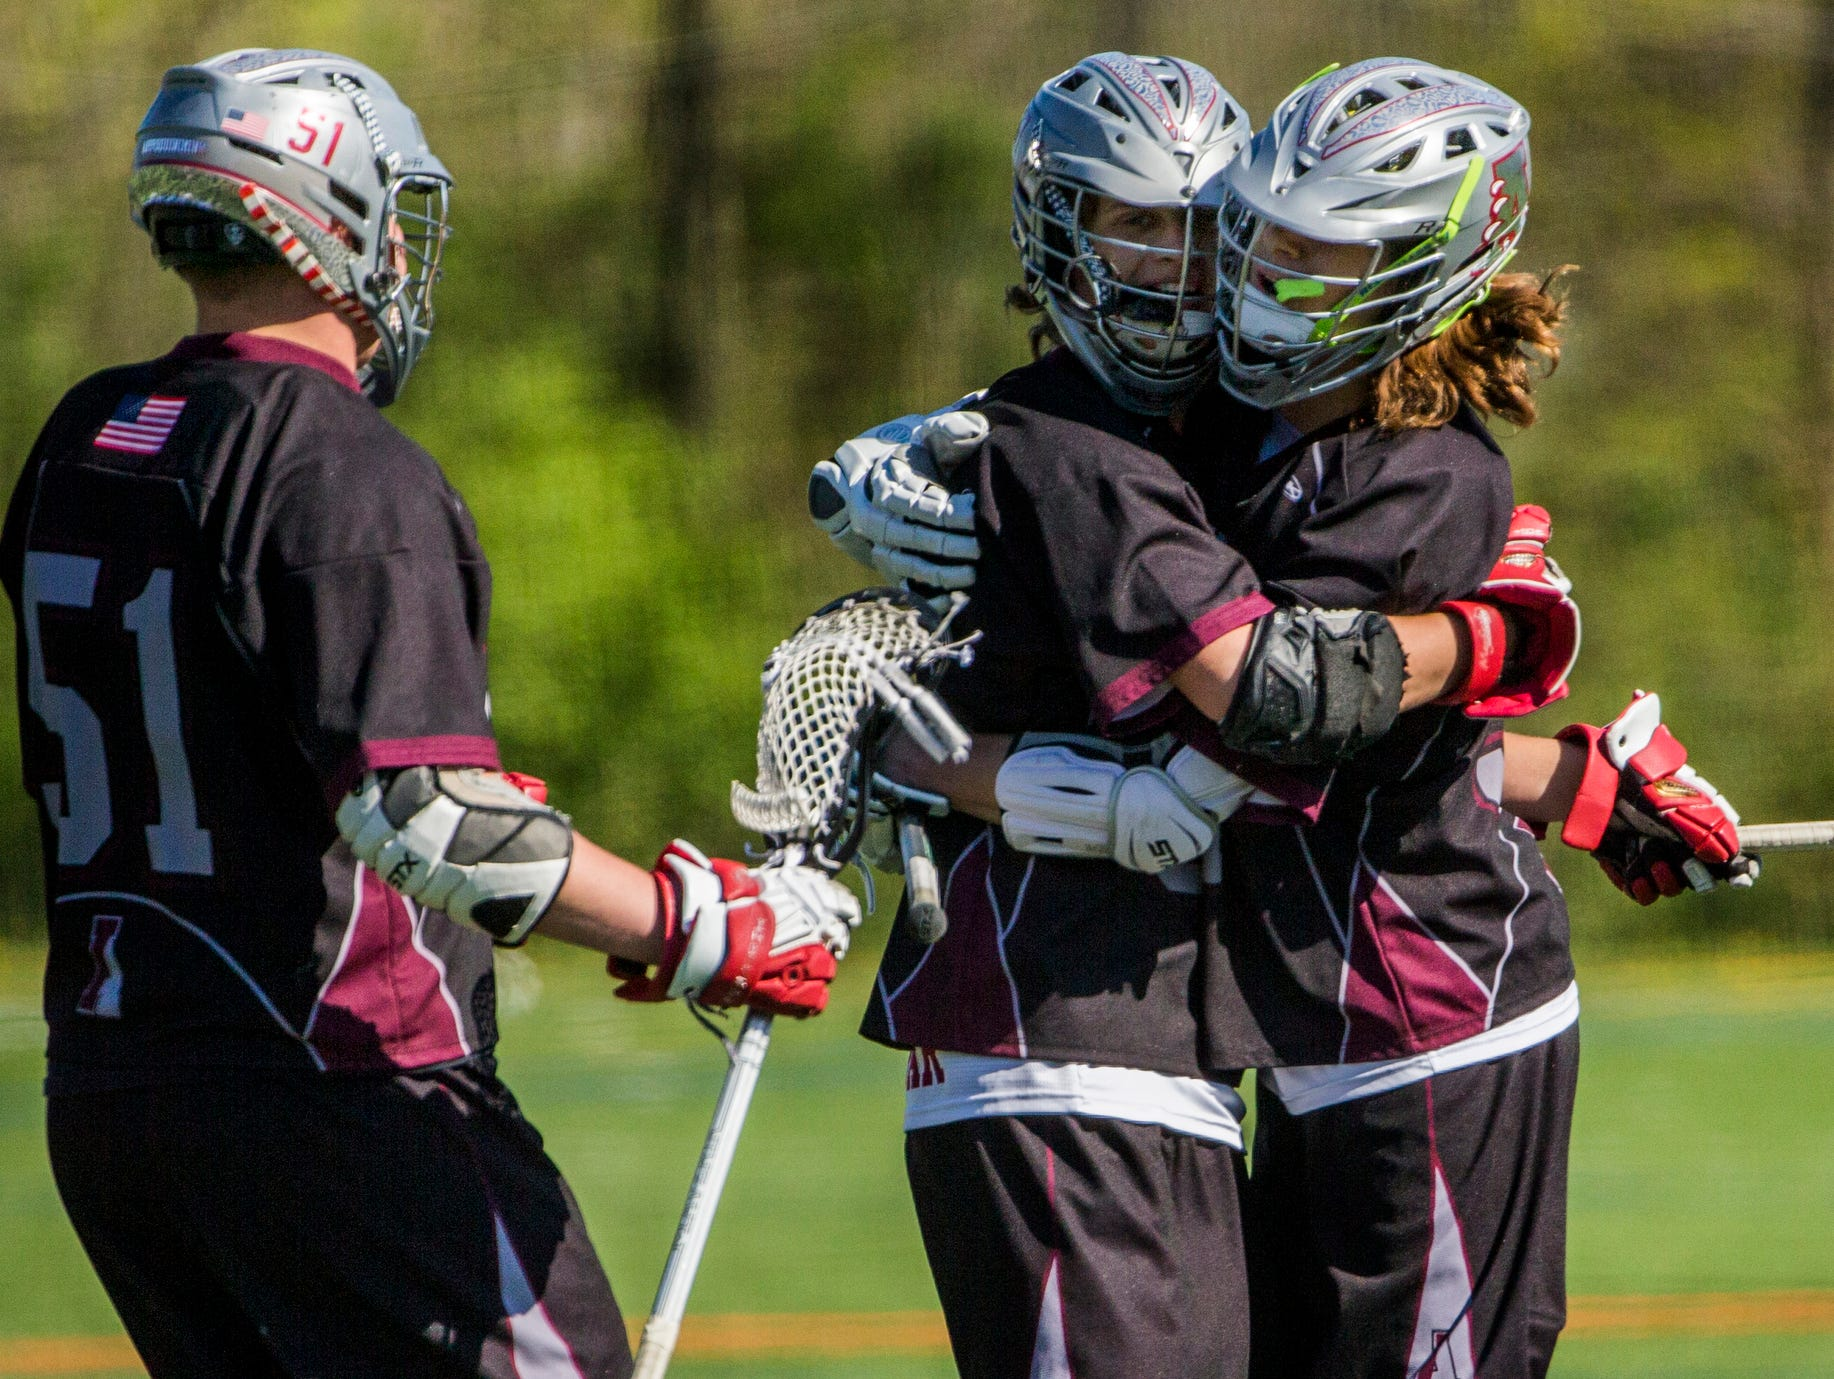 Appoquinimink's John Dunbar (center) gets a hug from teammate Cross Ferrara (right) after scoring a goal in the first quarter of Appoquinimink's 13-12 win over Archmere at Archmere Academy on Wednesday afternoon.